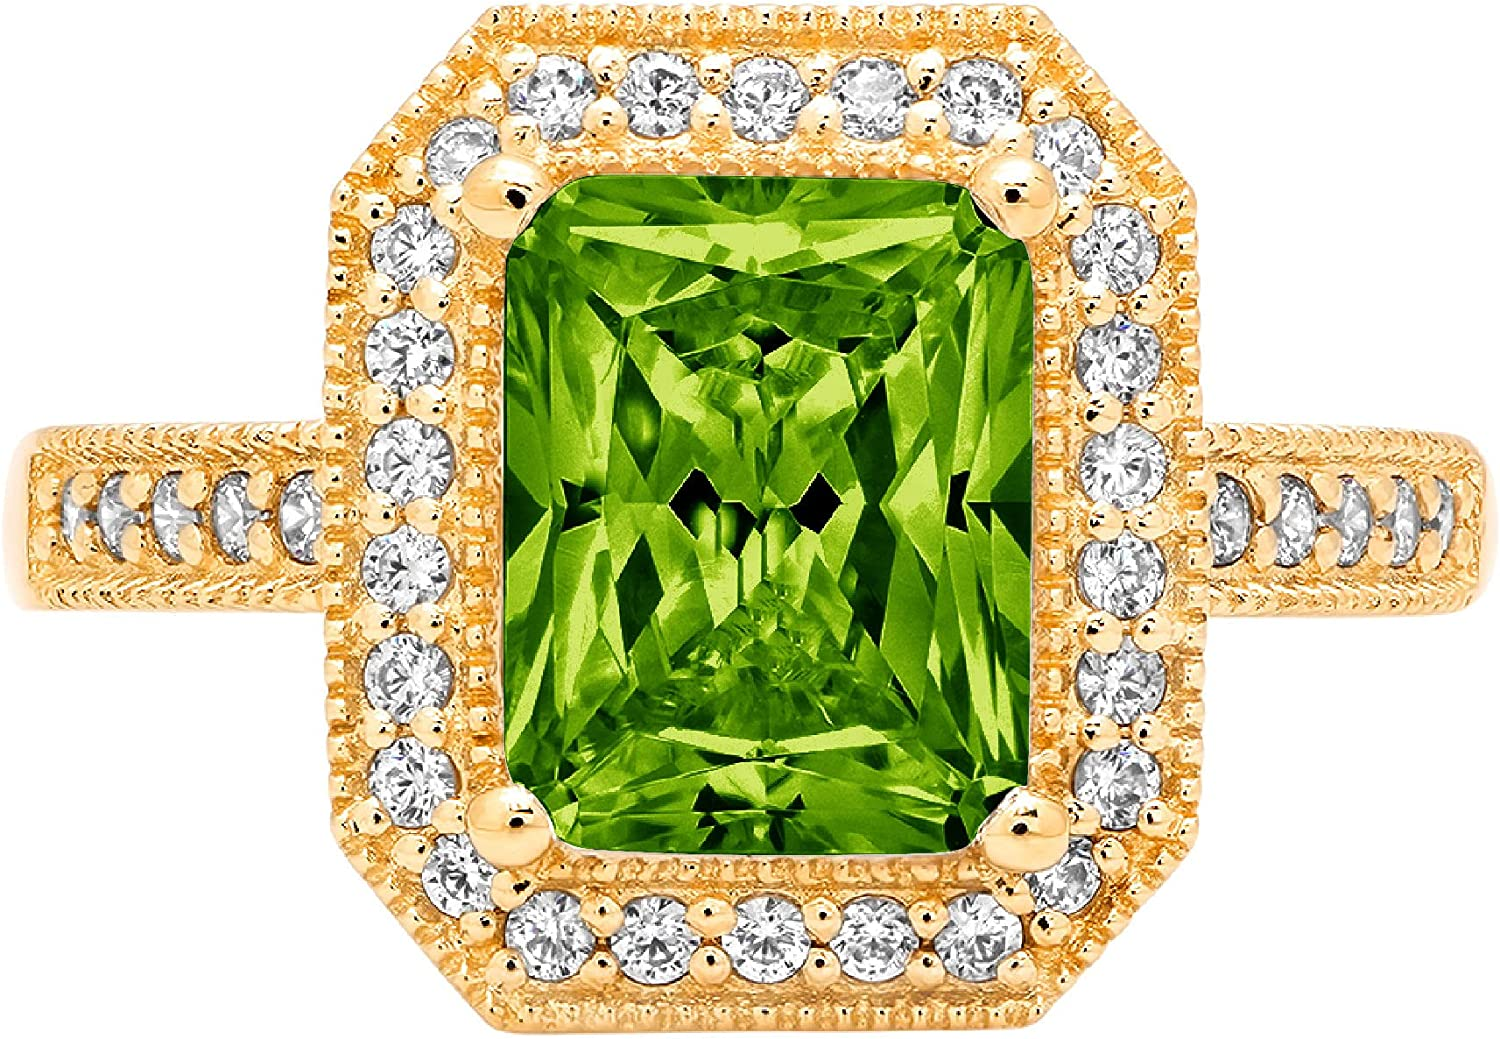 Clara Pucci 2.94 Brilliant Emerald Cut Solitaire Accent Halo Stunning Genuine Flawless Natural Green Peridot Gem Designer Modern Ring Solid 18K Yellow Gold